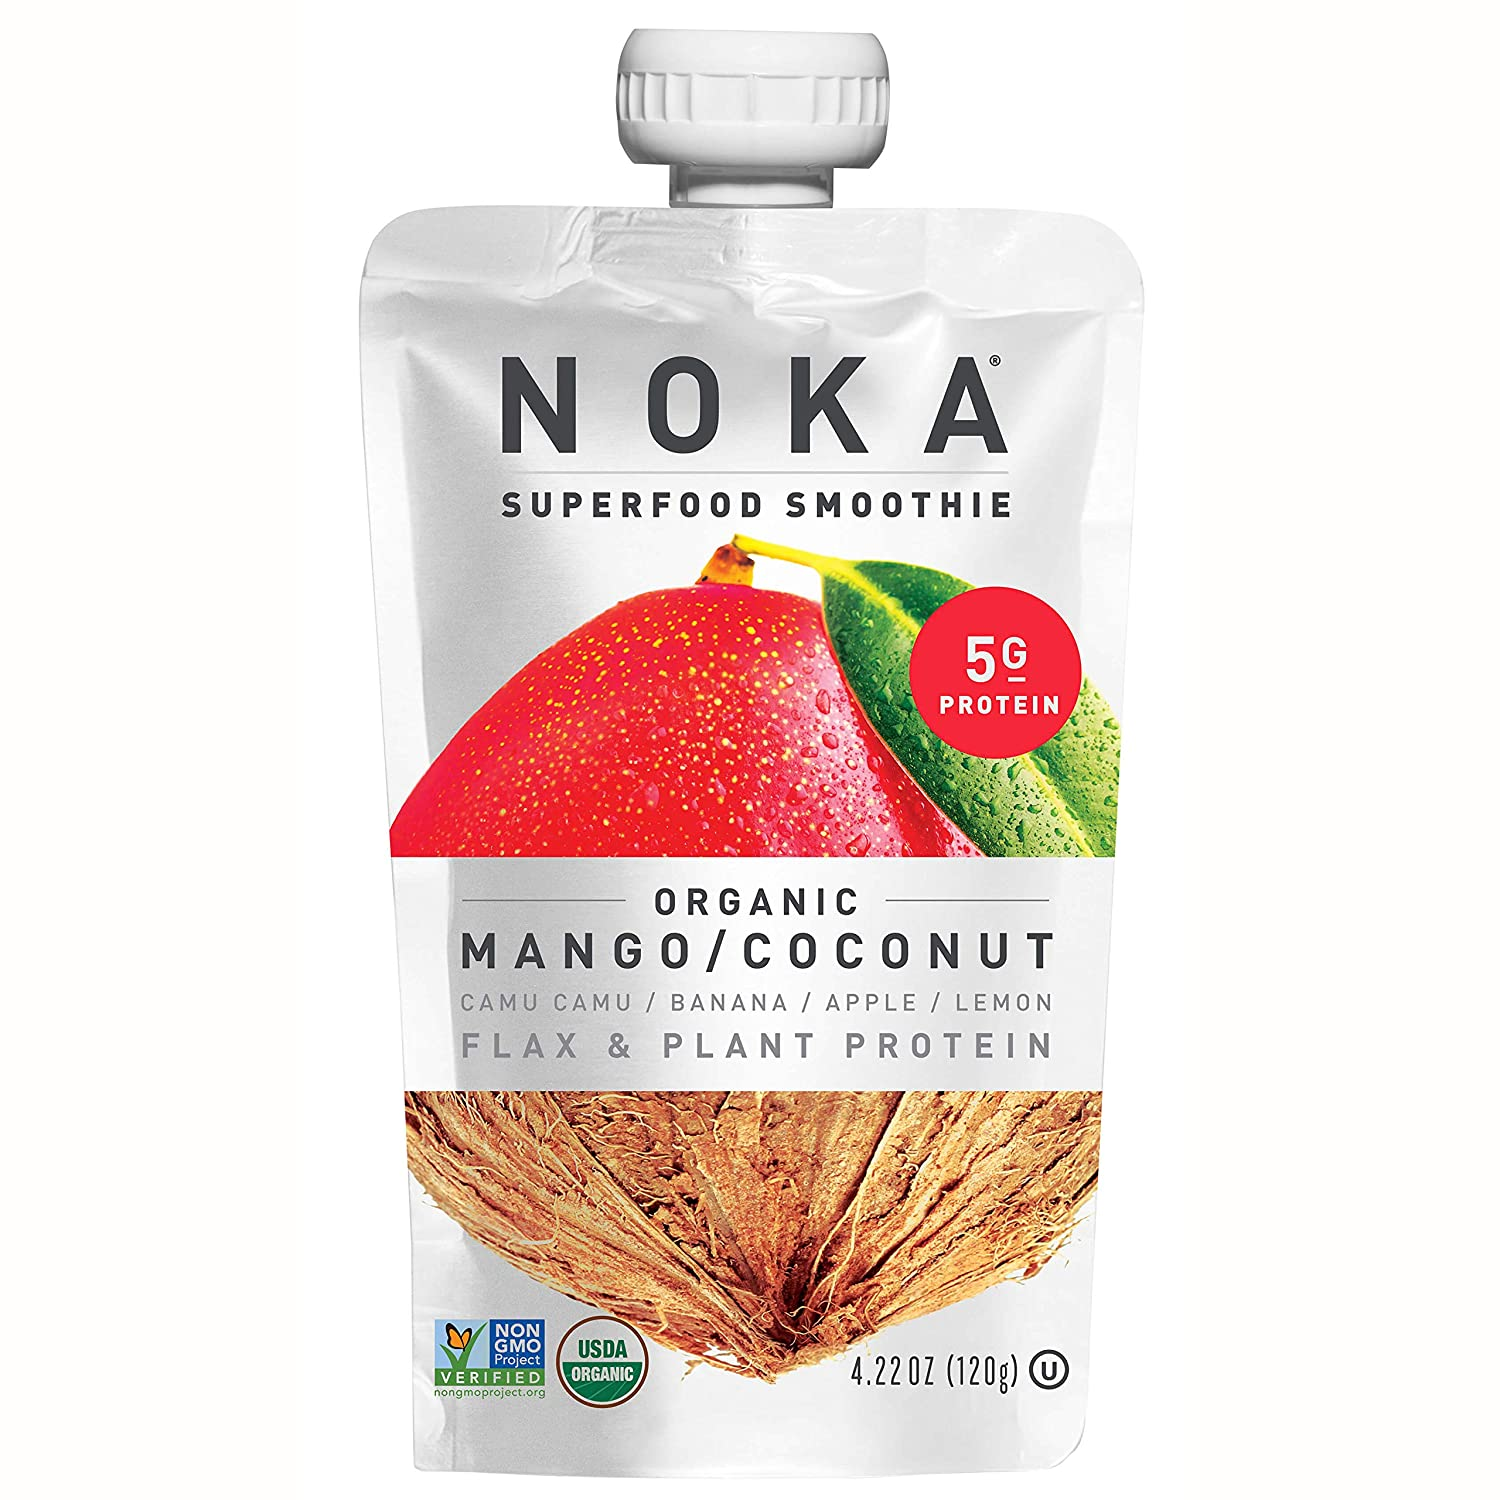 NOKA Superfood Smoothie Pouches (Mango Coconut) 12 Pack | 100% Organic Healthy Fruit And Veggie Squeeze Snack Packs | Meal Replacement | Non GMO, Gluten Free, Vegan, 5g Plant Protein | 4.2oz Each